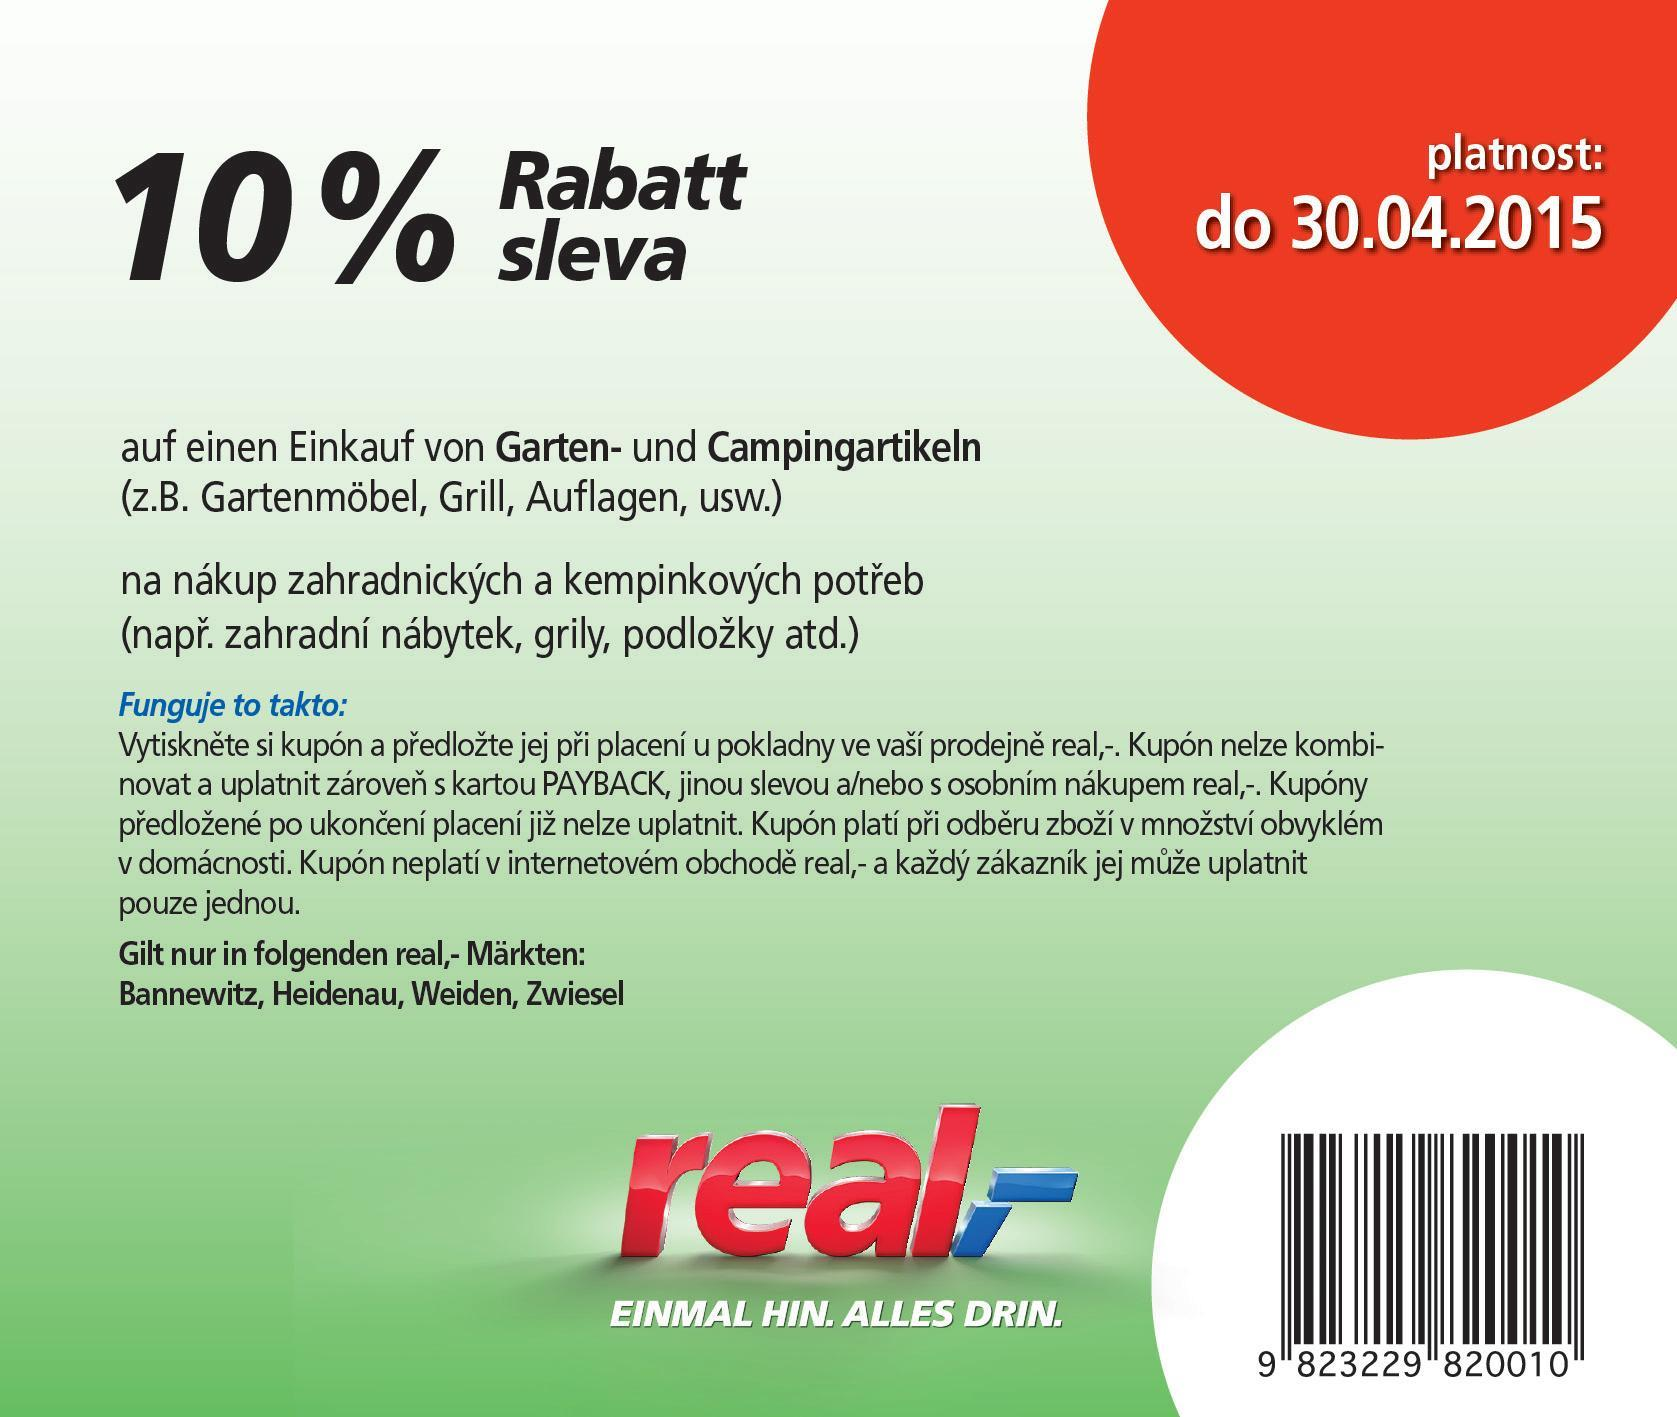 coupons_apr_2015_cz-pg3awg.jpg